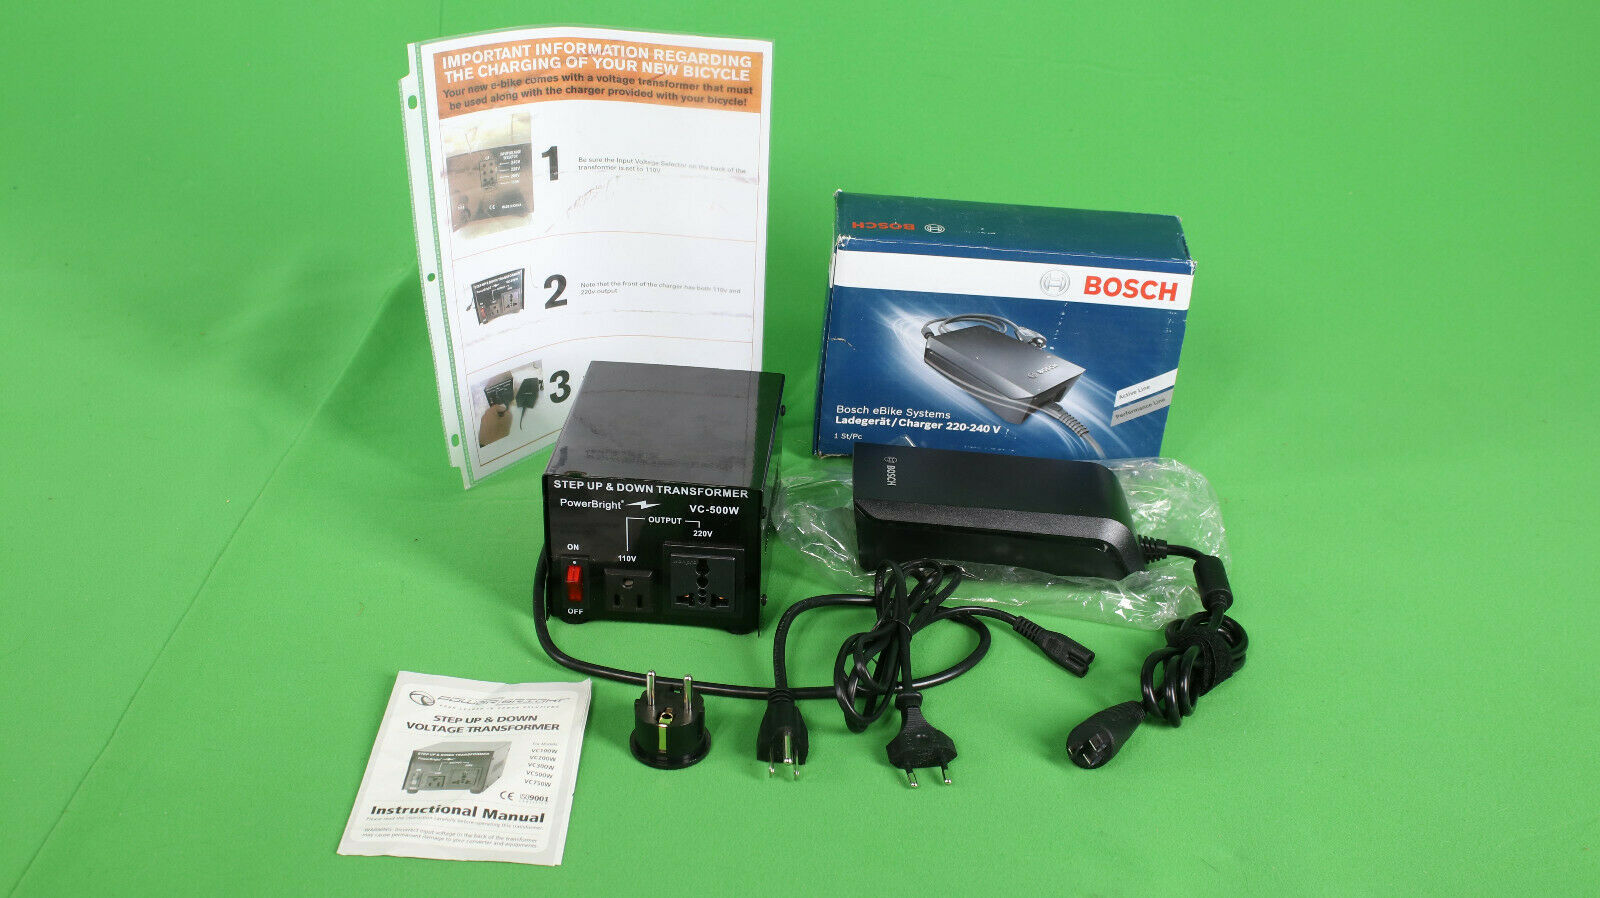 WORLDWIDE Bosch e-Bike Battery Charger 4 amp  - Fast Charge   new listing